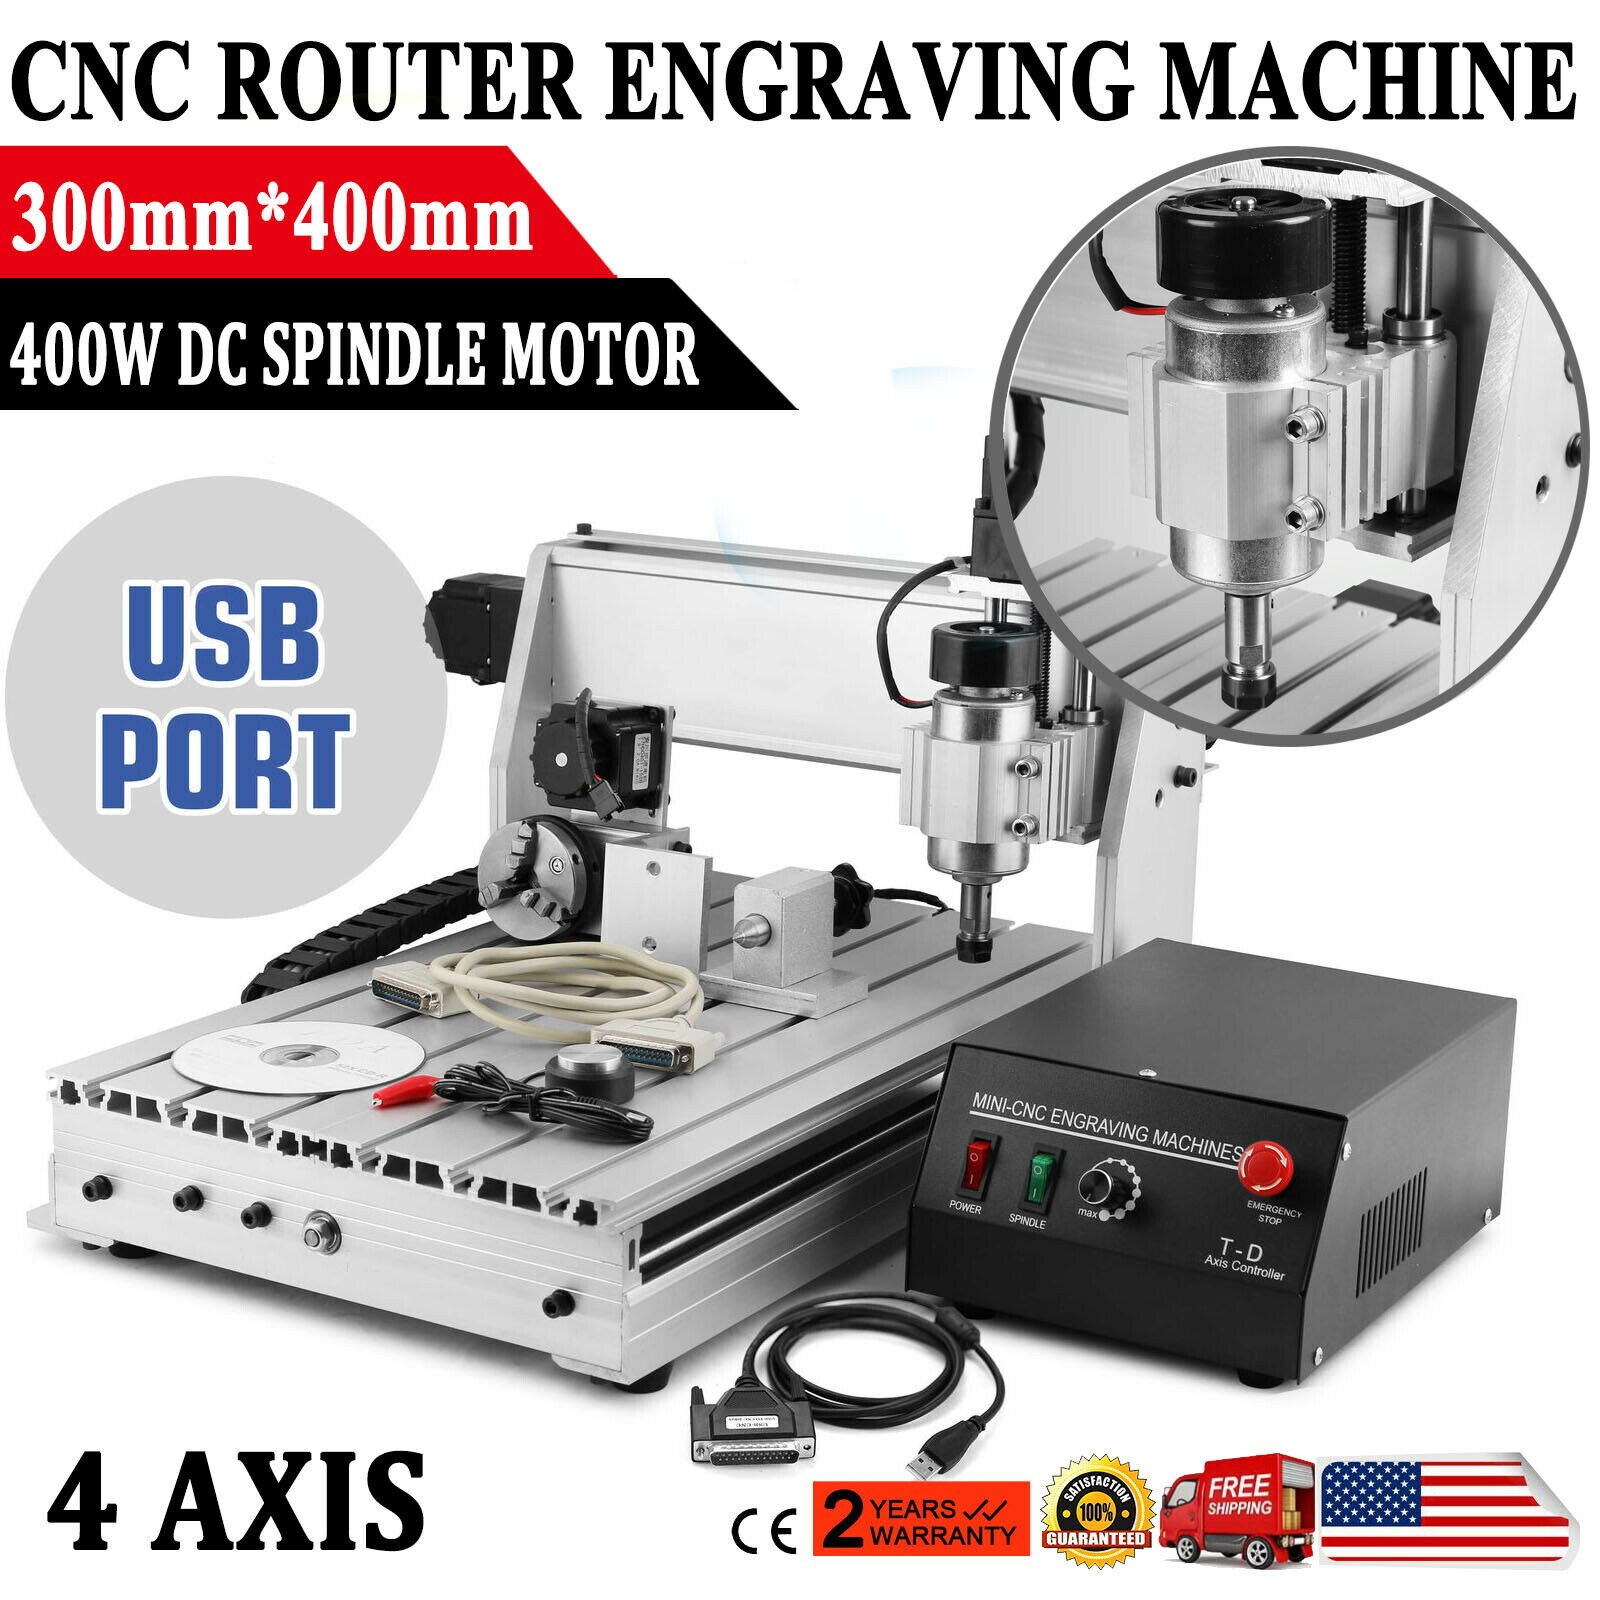 CNC Router Engraving Machine Engraver T-SCREW 3040T 4 Axis Desktop Wood Carving DIY Crafts Cutter Advertising Signs Cut Machine